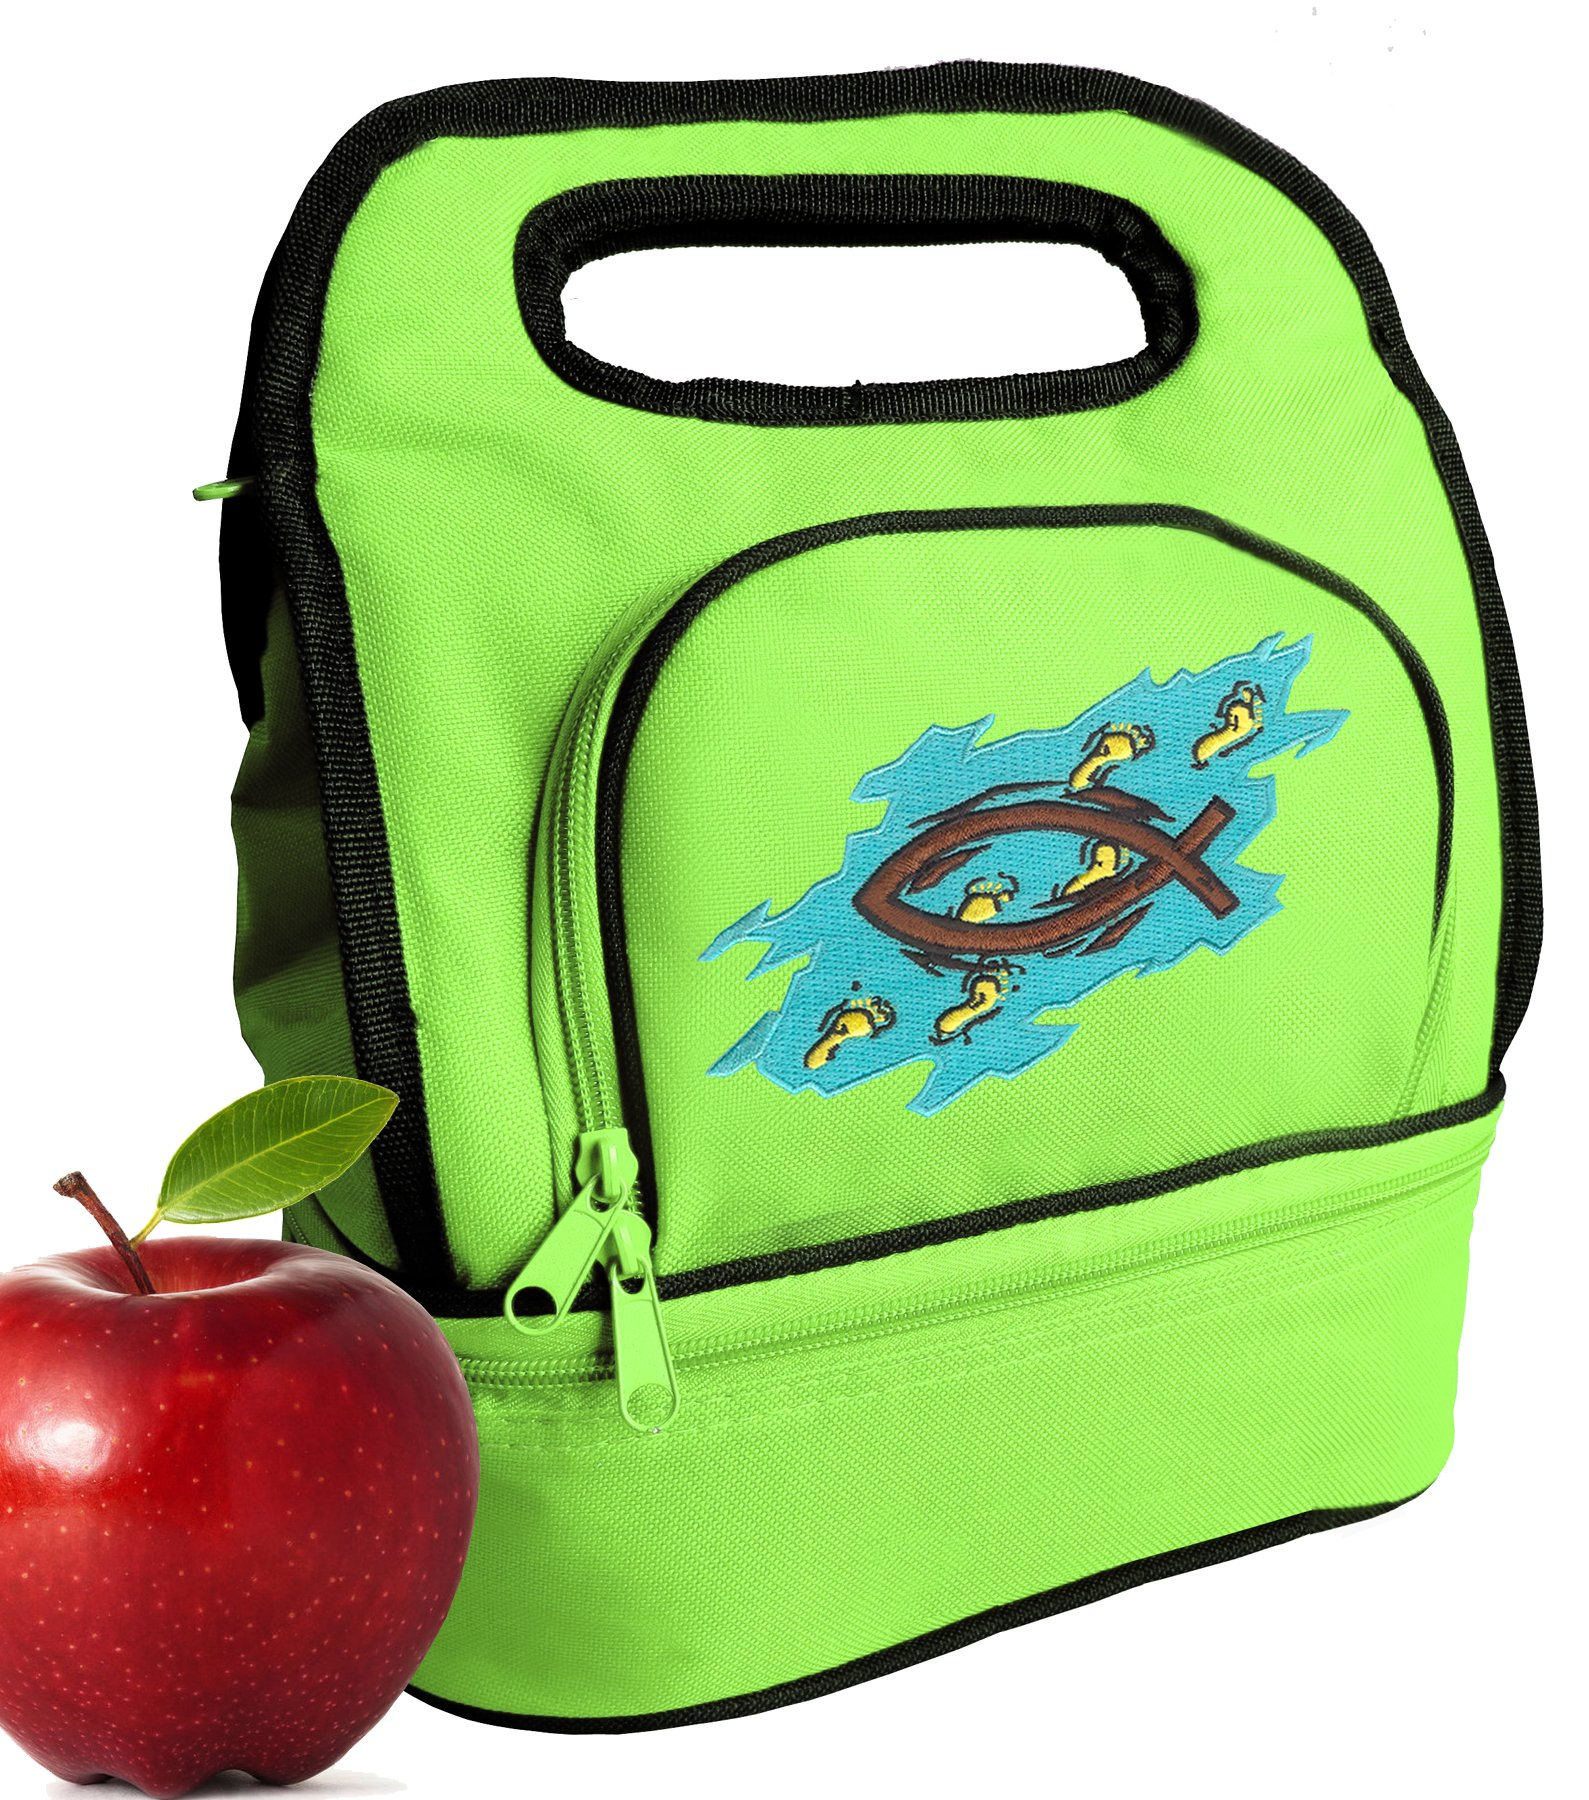 Christian Lunch Bag Cooler Christian Lunchbox with 2 Sections! by Broad Bay